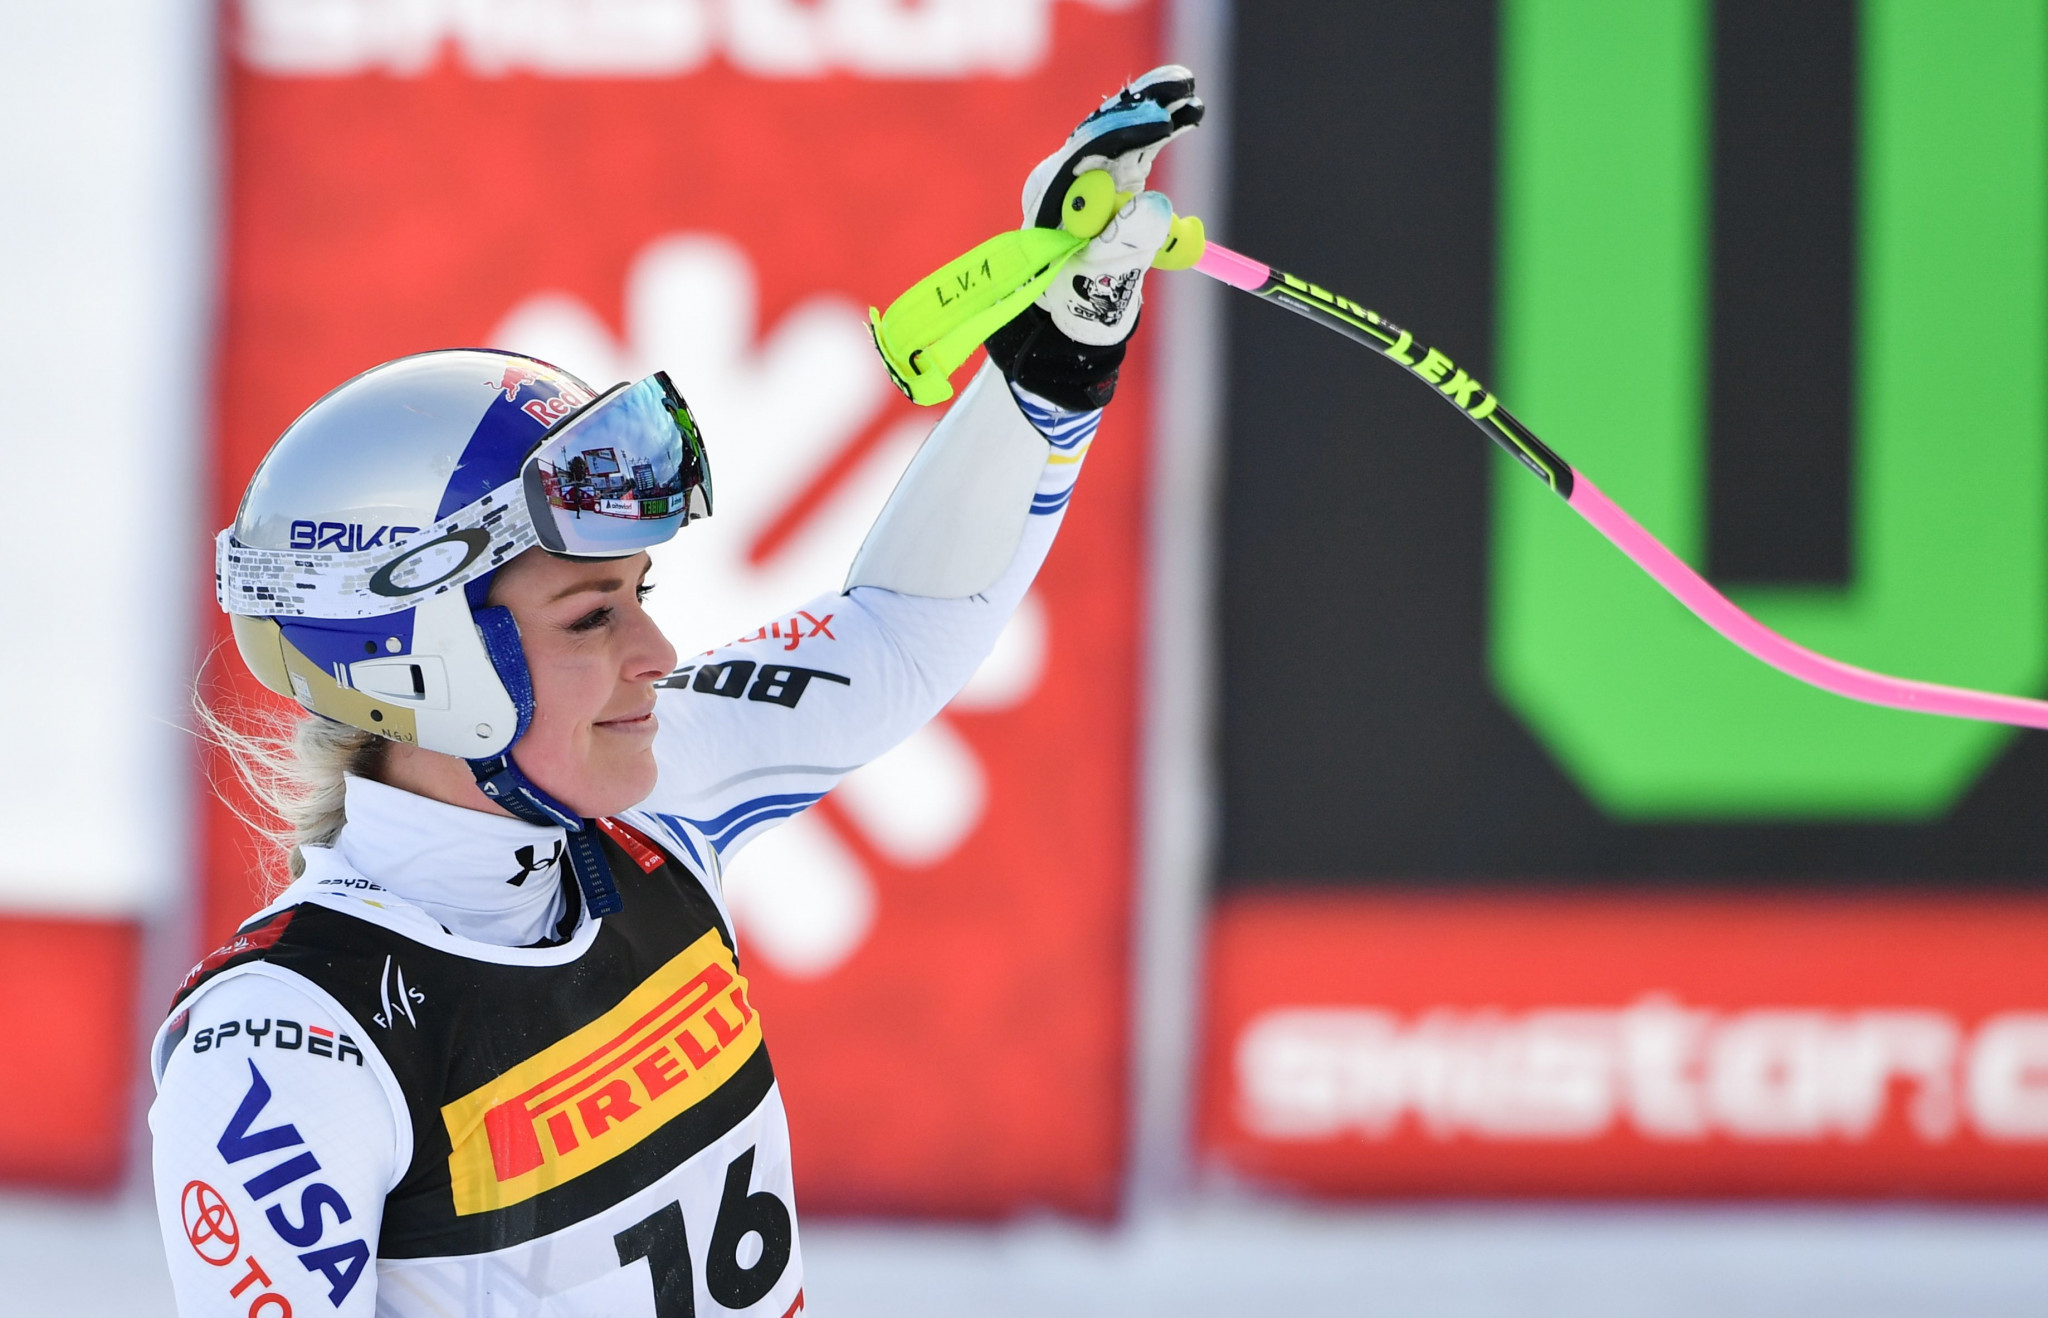 Lindsey Vonn is among the skiers listed as having endorsed Johan Eliasch's candidacy ©Getty Images